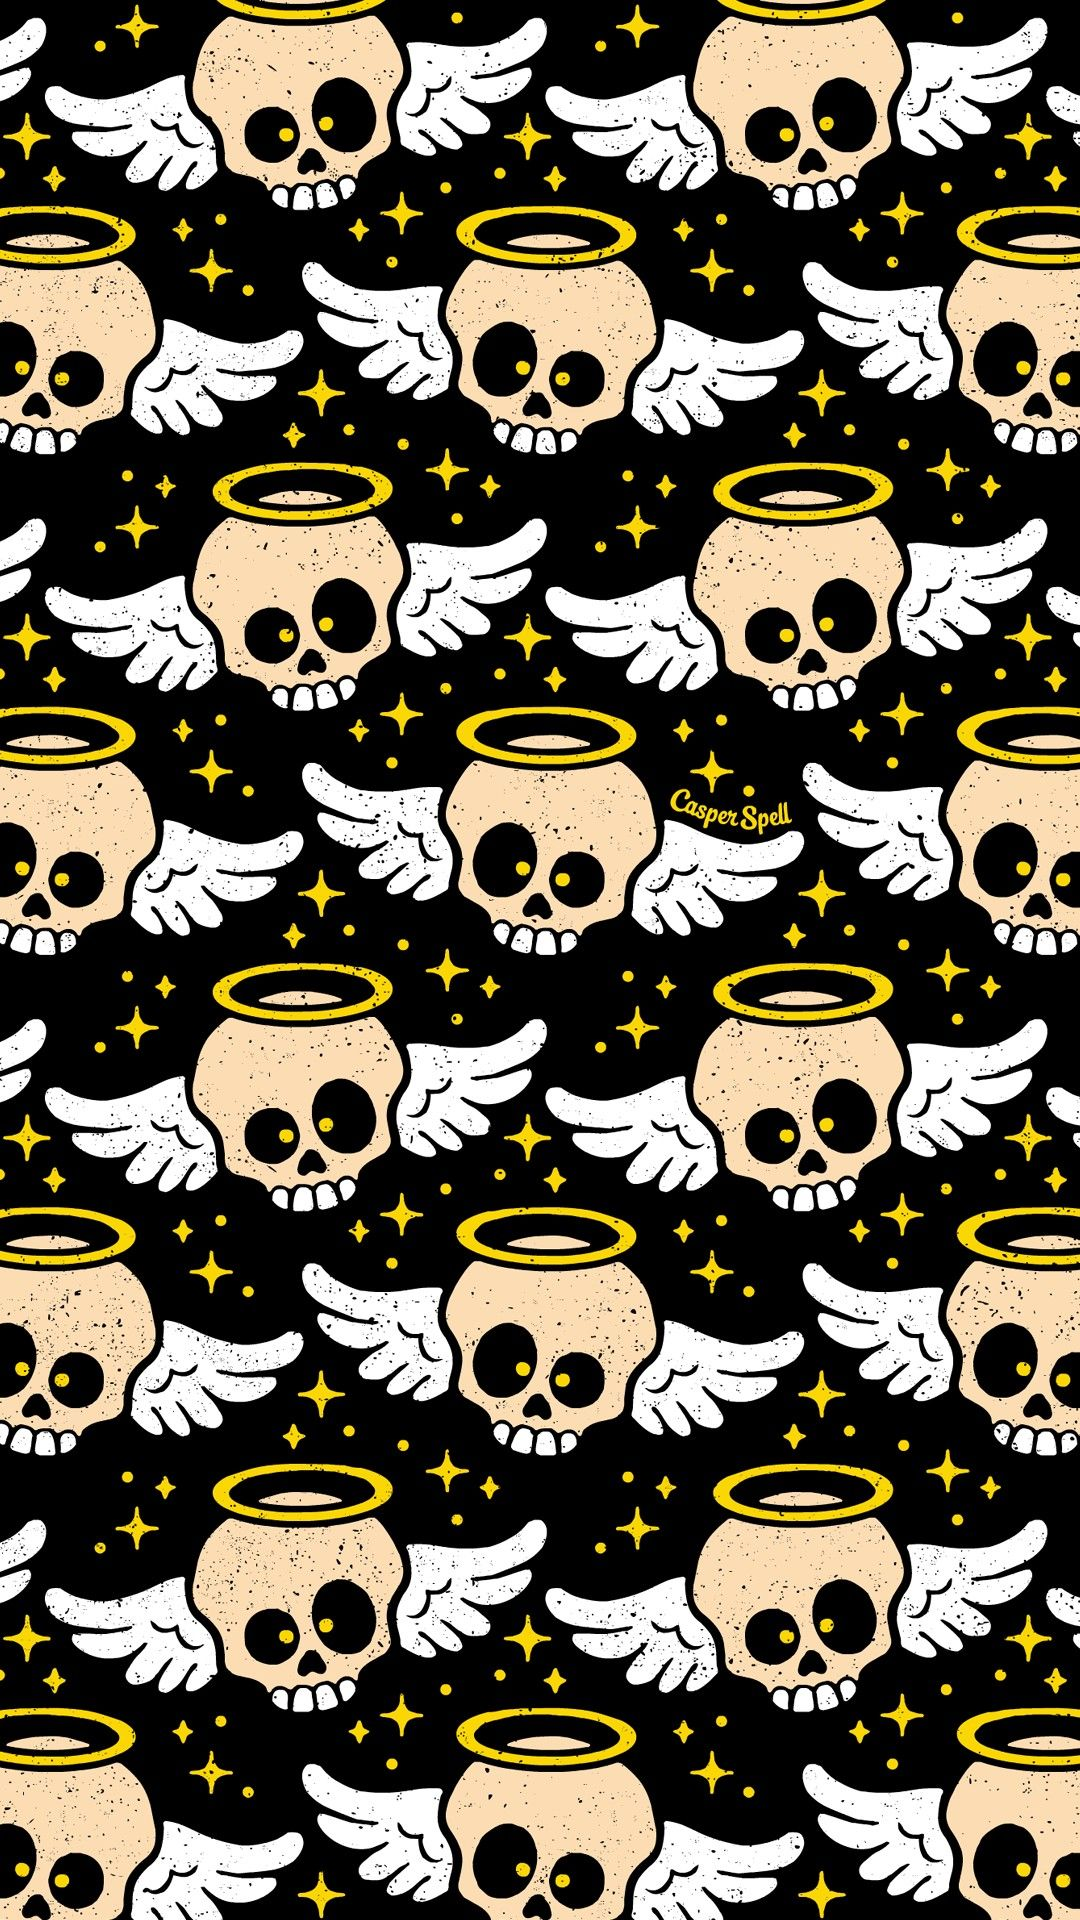 Angel Skull Skulls Macabre Spooky Creepy Cute Halloween Wallpaper Repeat Pattern Patterns Iphone Phone Back Halloween Wallpaper Skull Wallpaper Cute Wallpapers